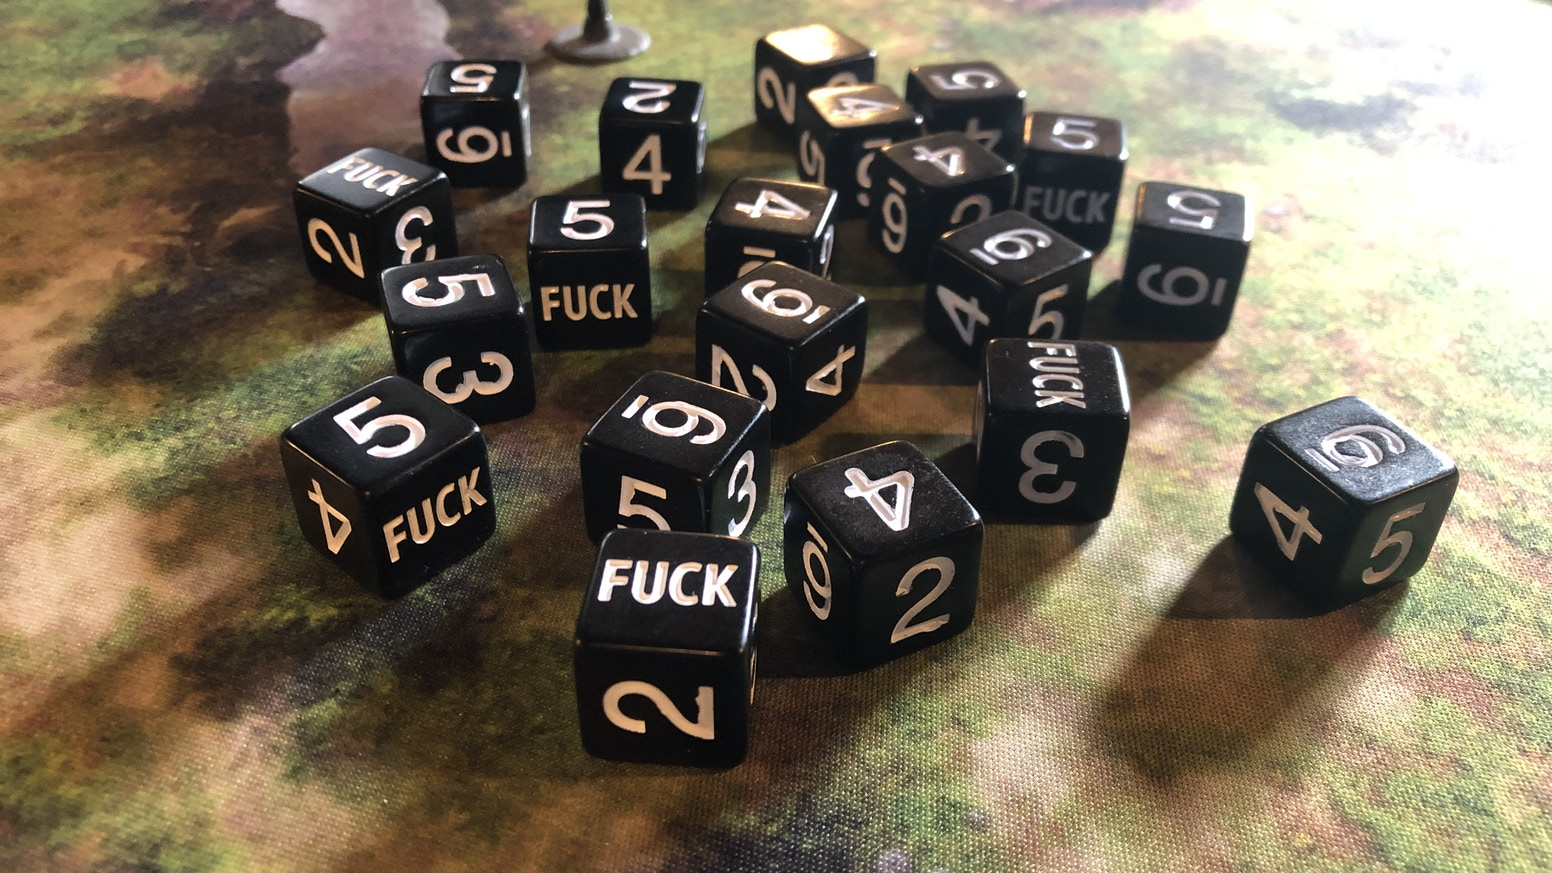 Professionally manufactured six-sided dice with FUCK instead of 1.